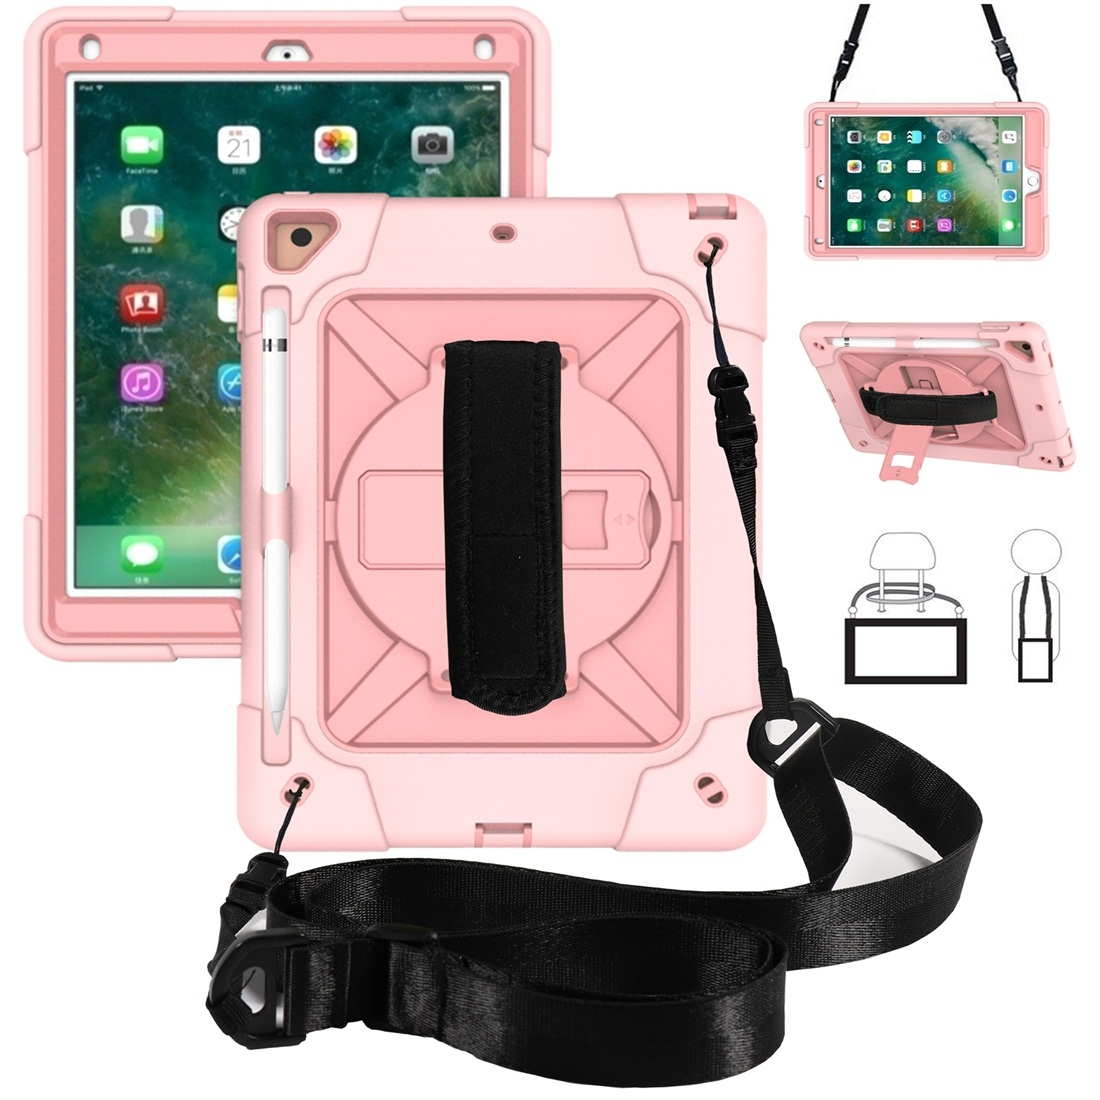 iPad 9.7 Case Contrasting Color Tough Durable Armor Case (Rose Gold)